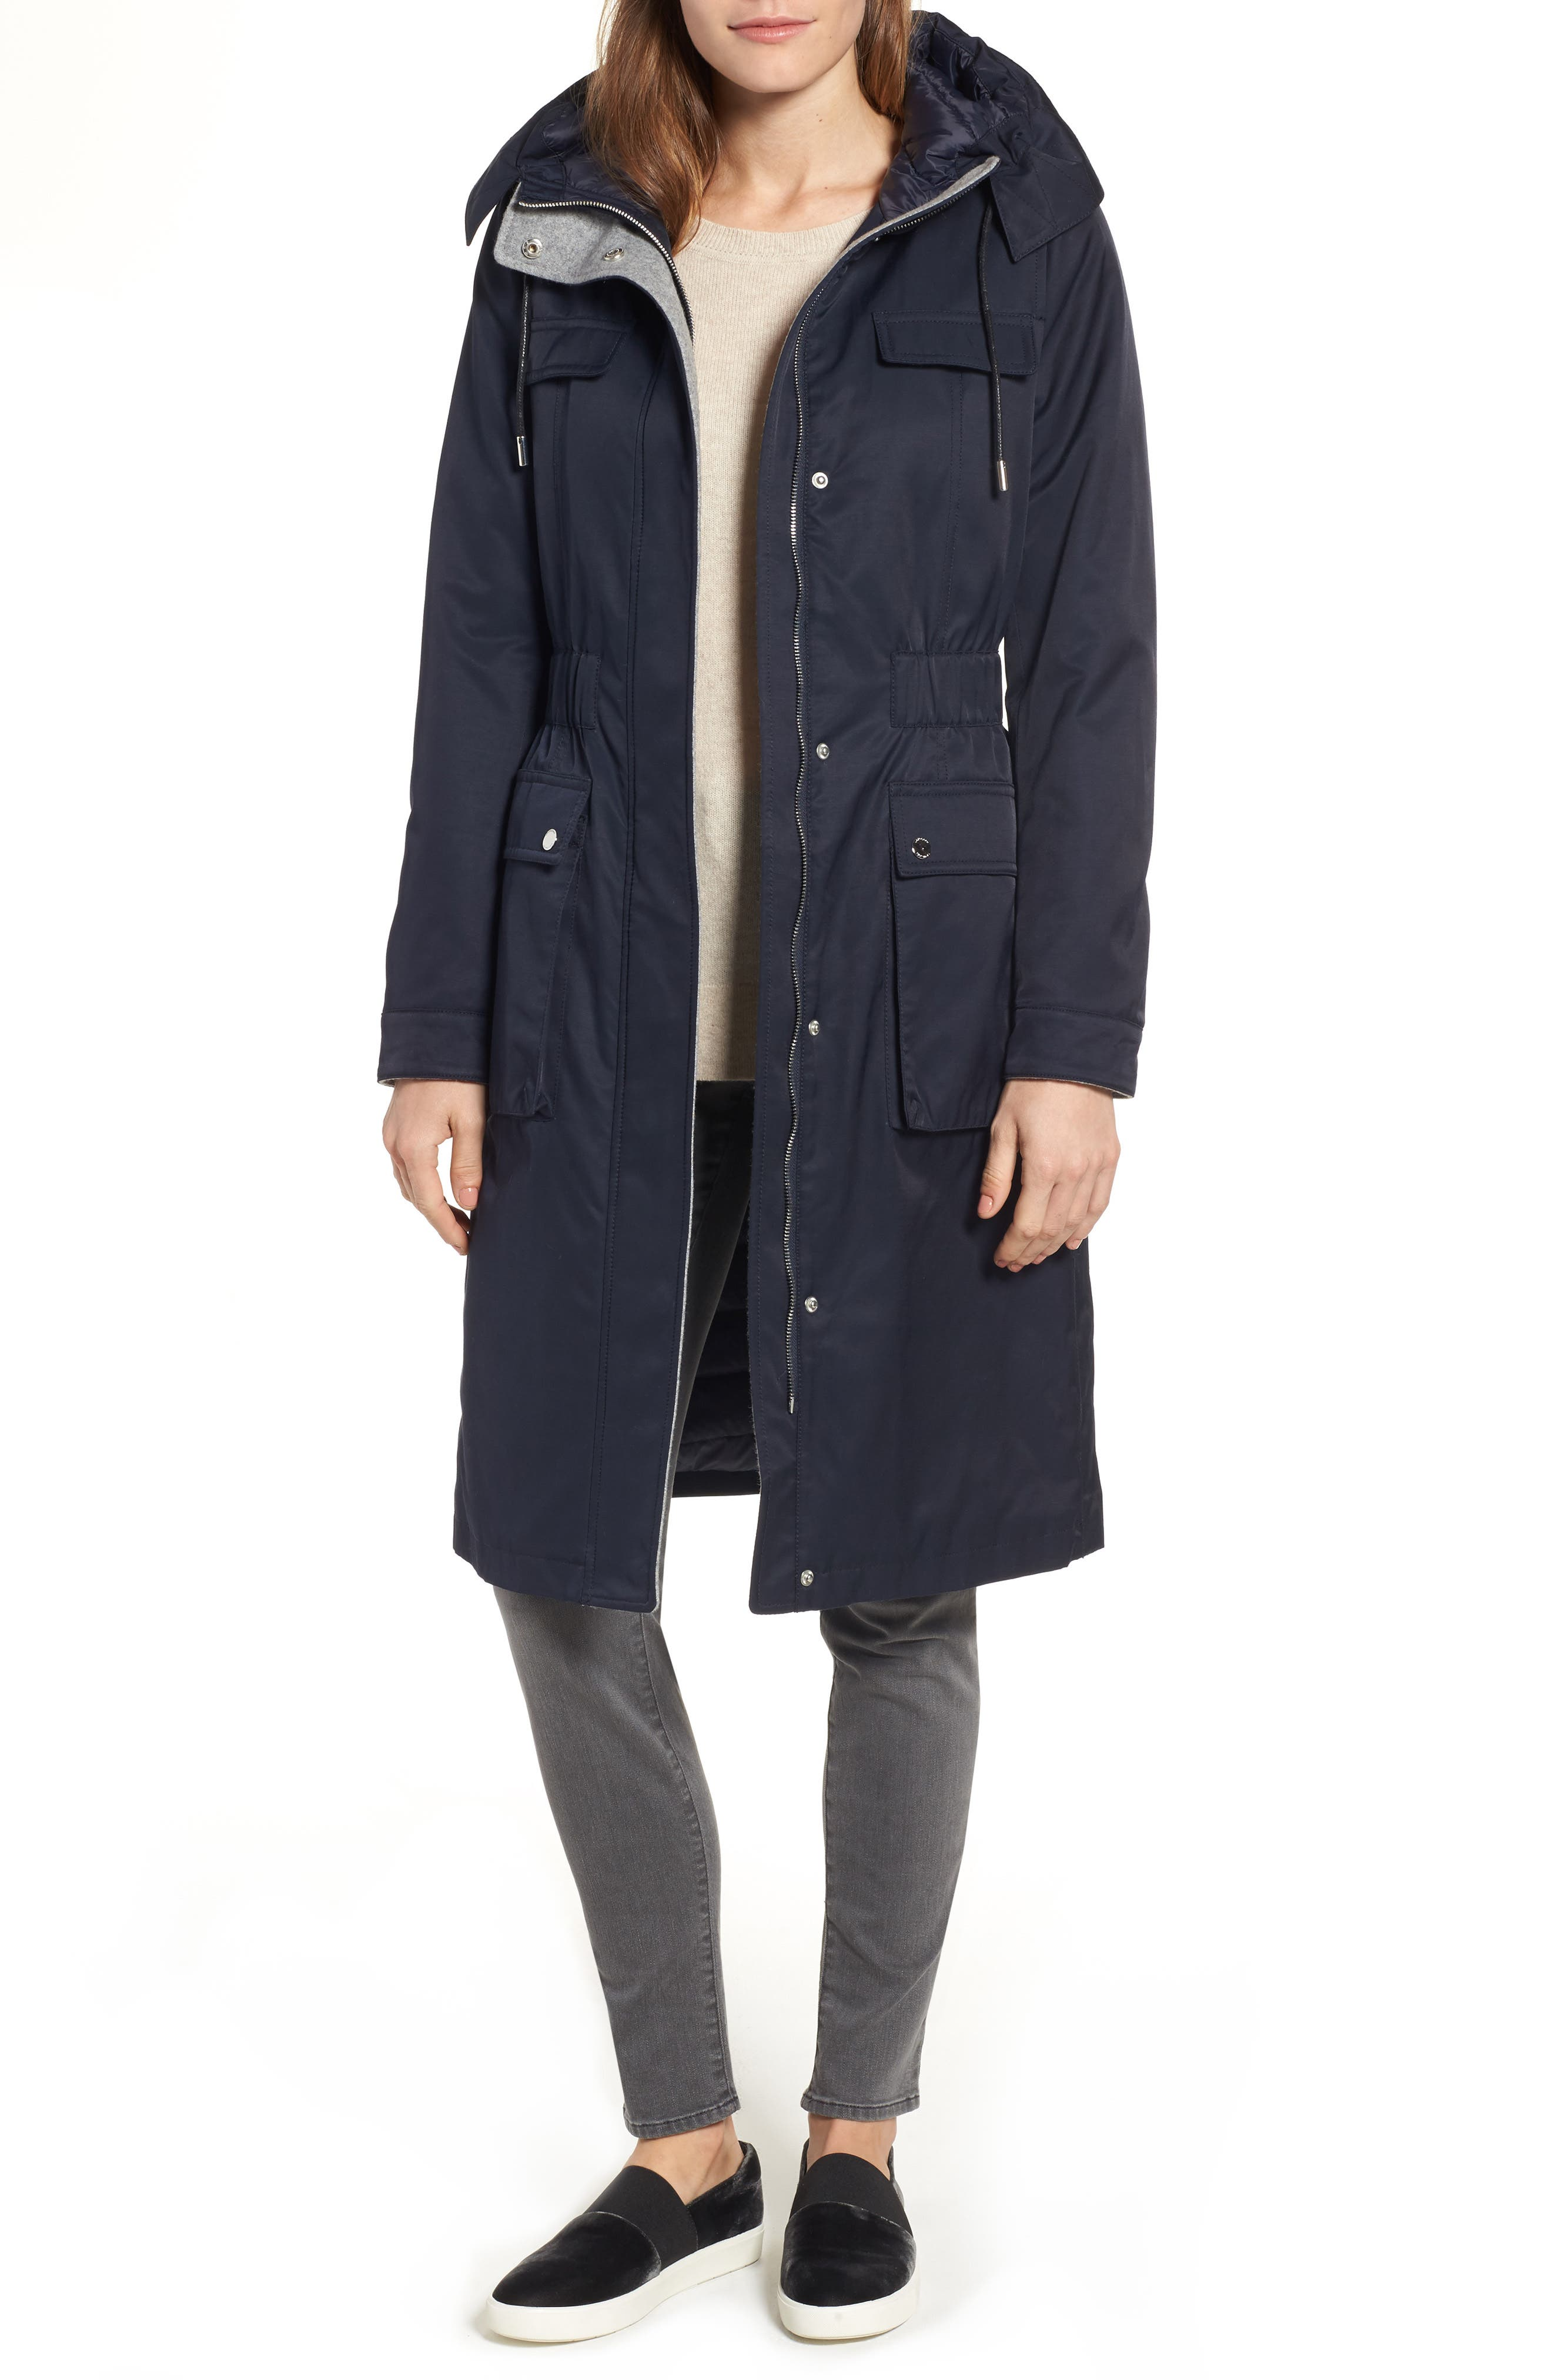 Laundry by Shelli Segal Cotton Blend Long Utility Trench Coat